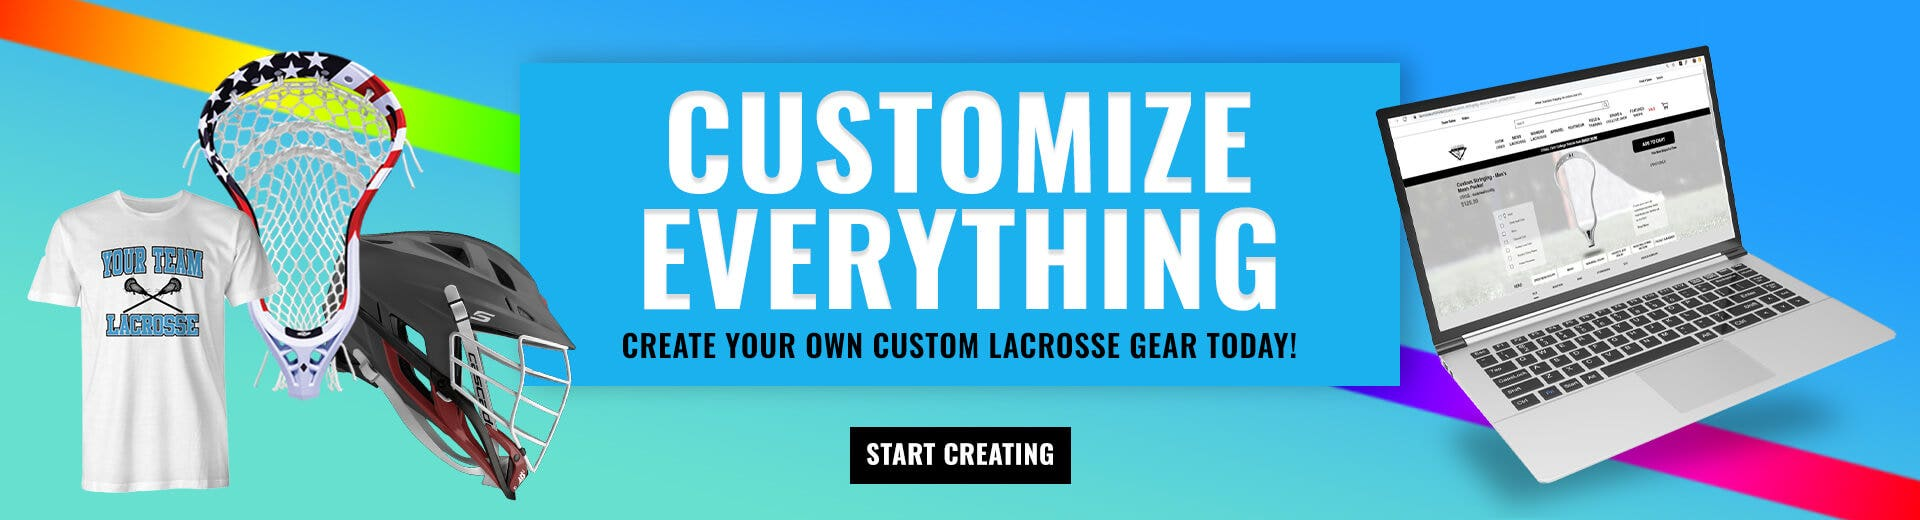 Custom Lacrosse Gear - DESKTOP